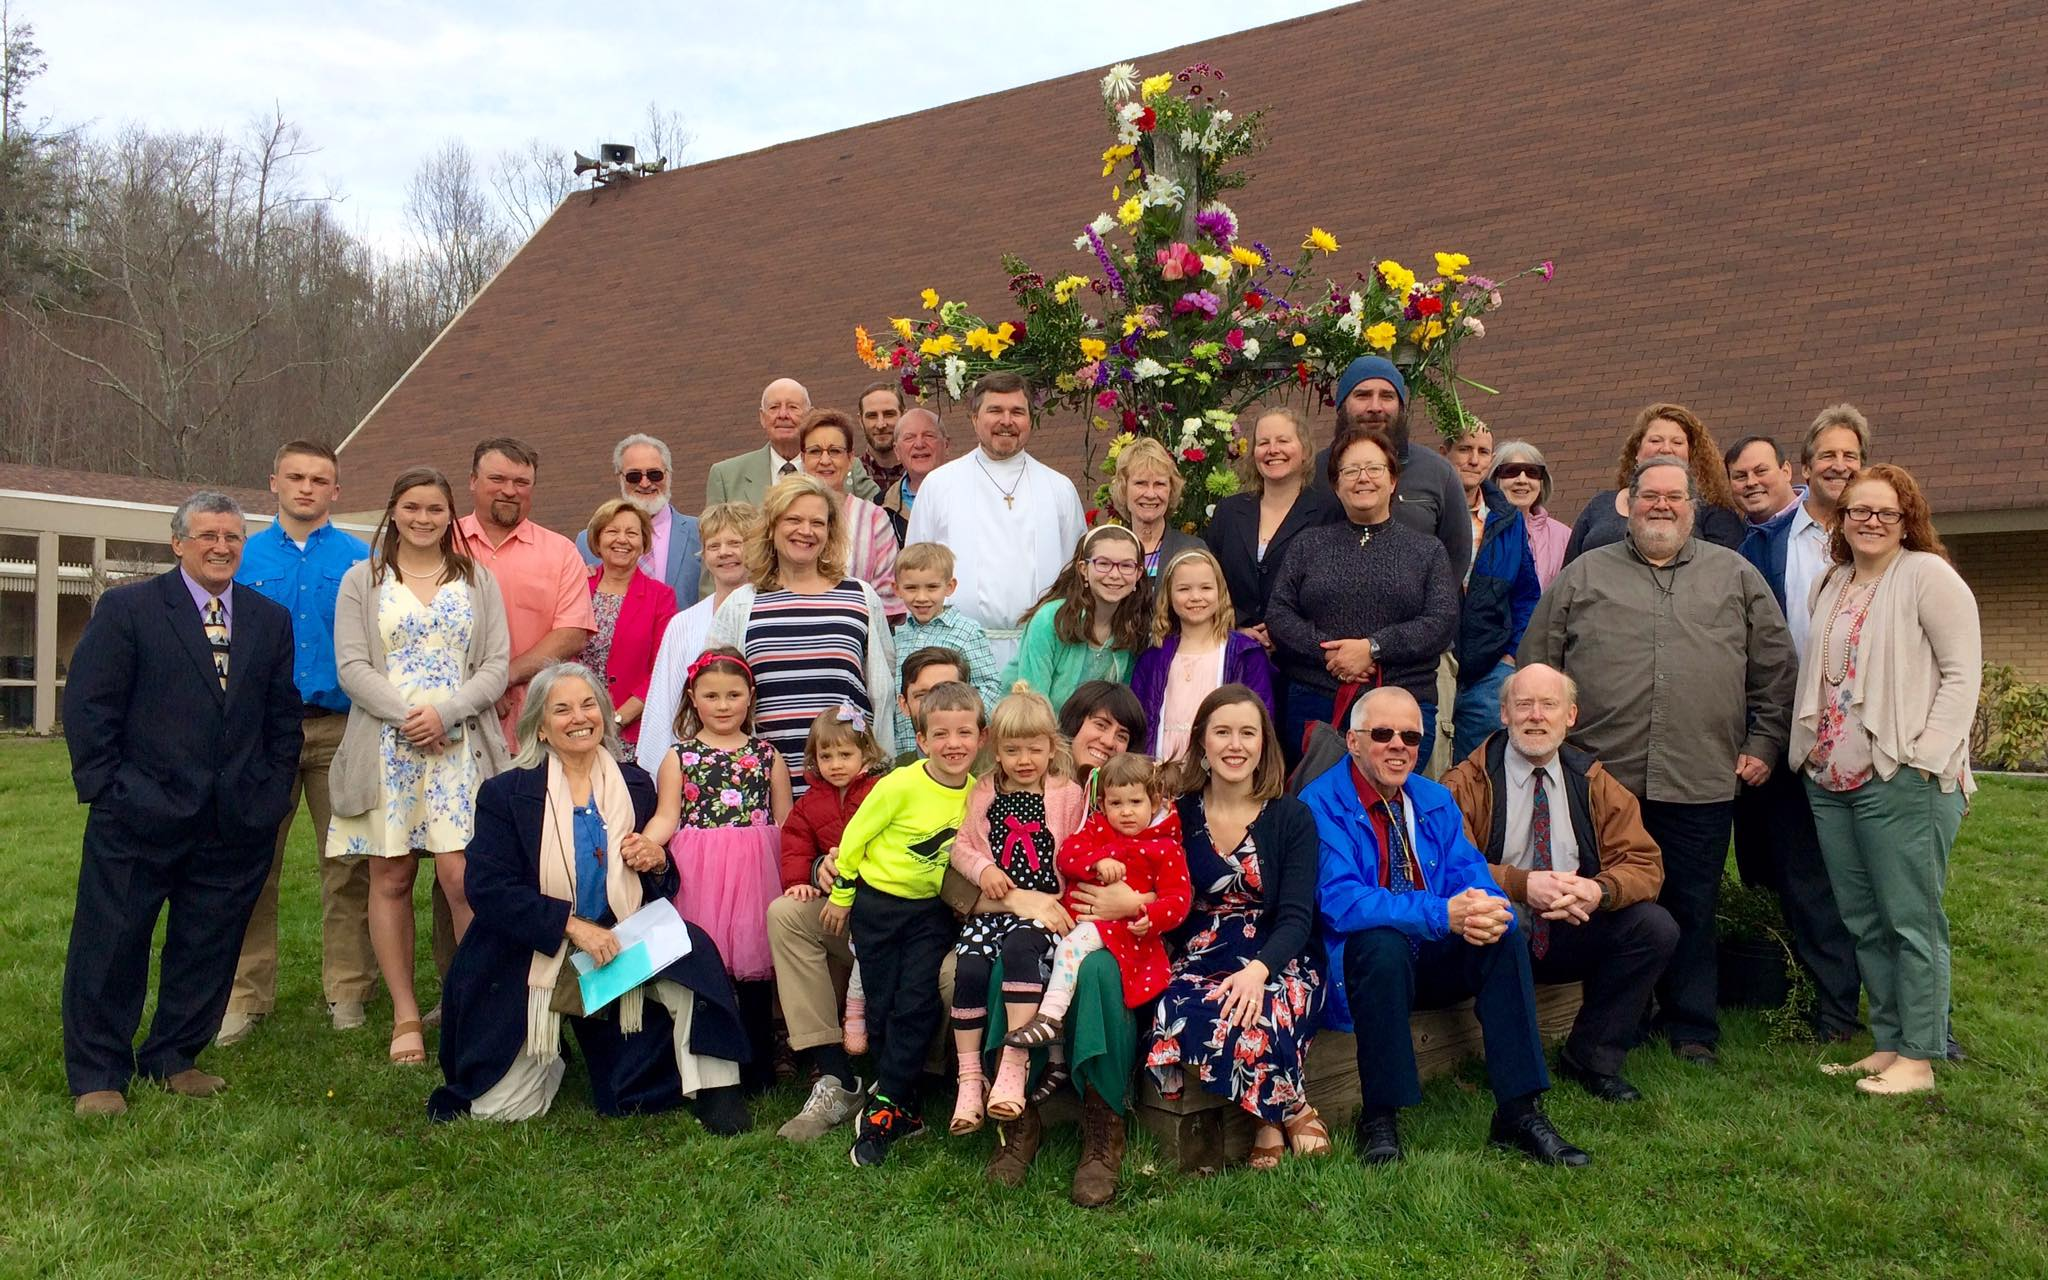 SPUMC-Website-Easter-2018.jpg